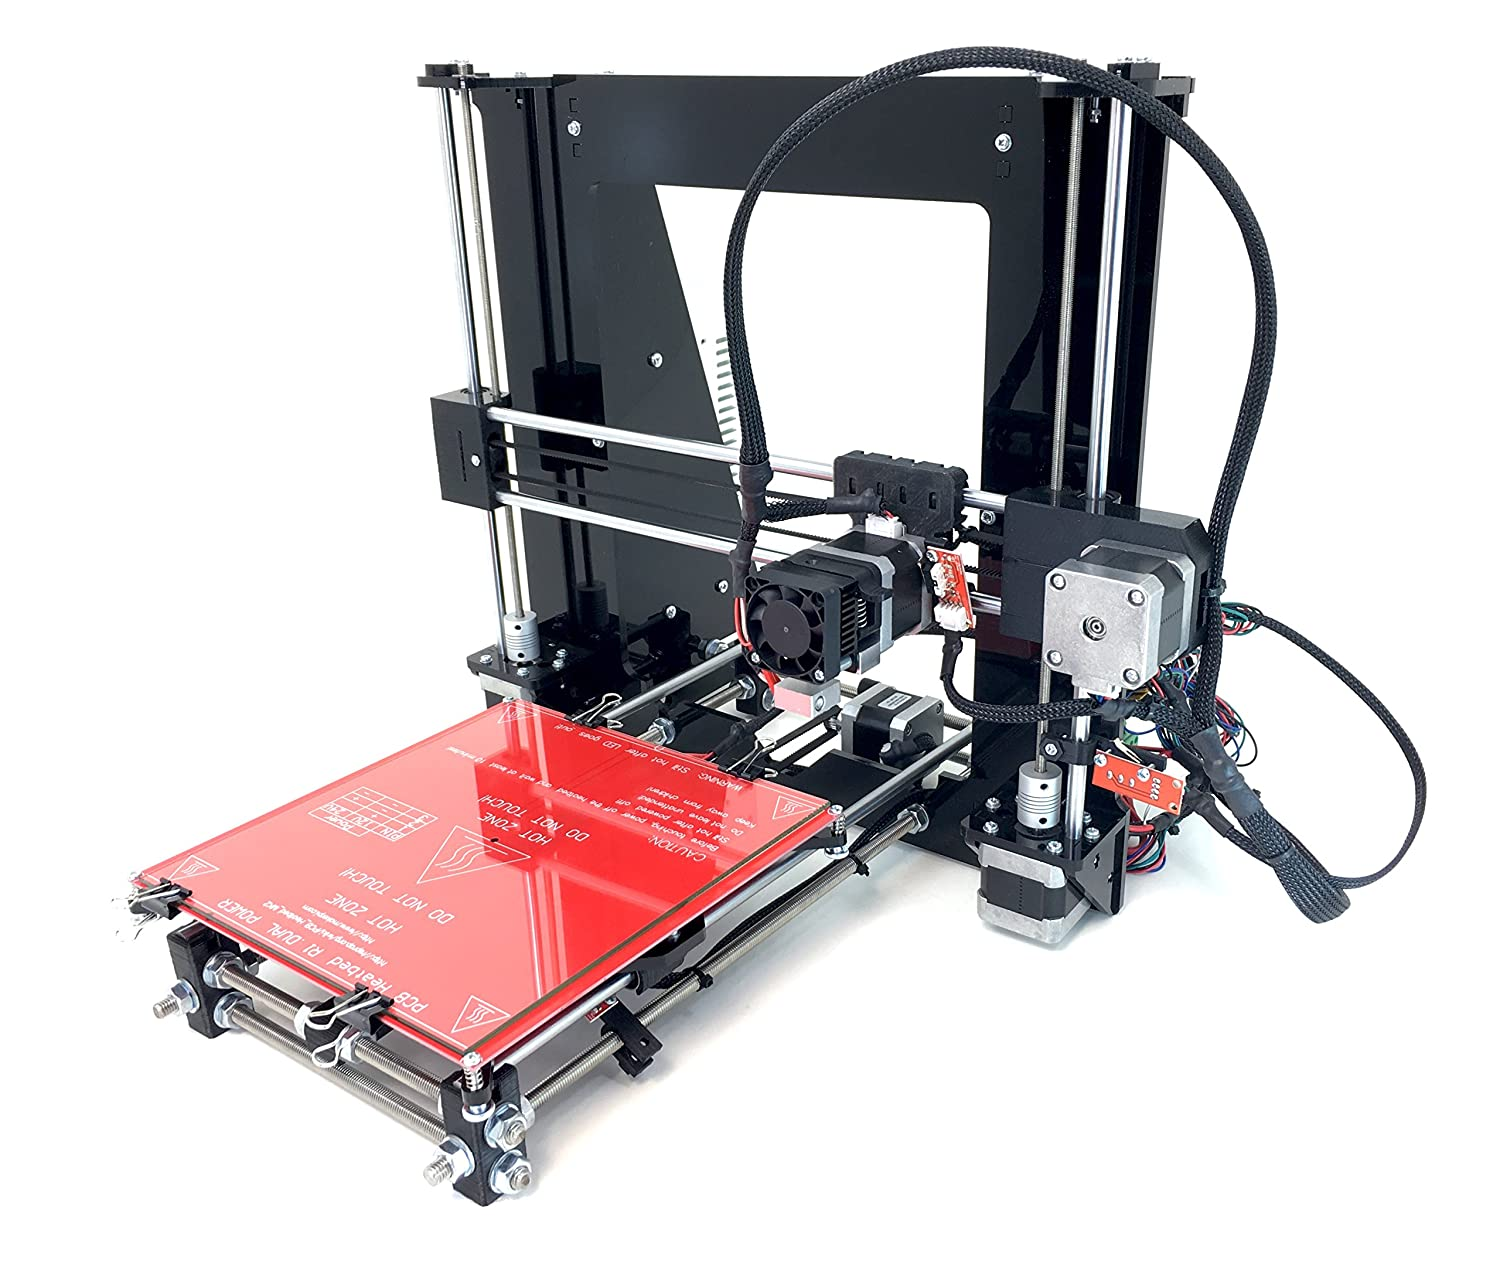 reprap guru original prusa best 3d printer budget